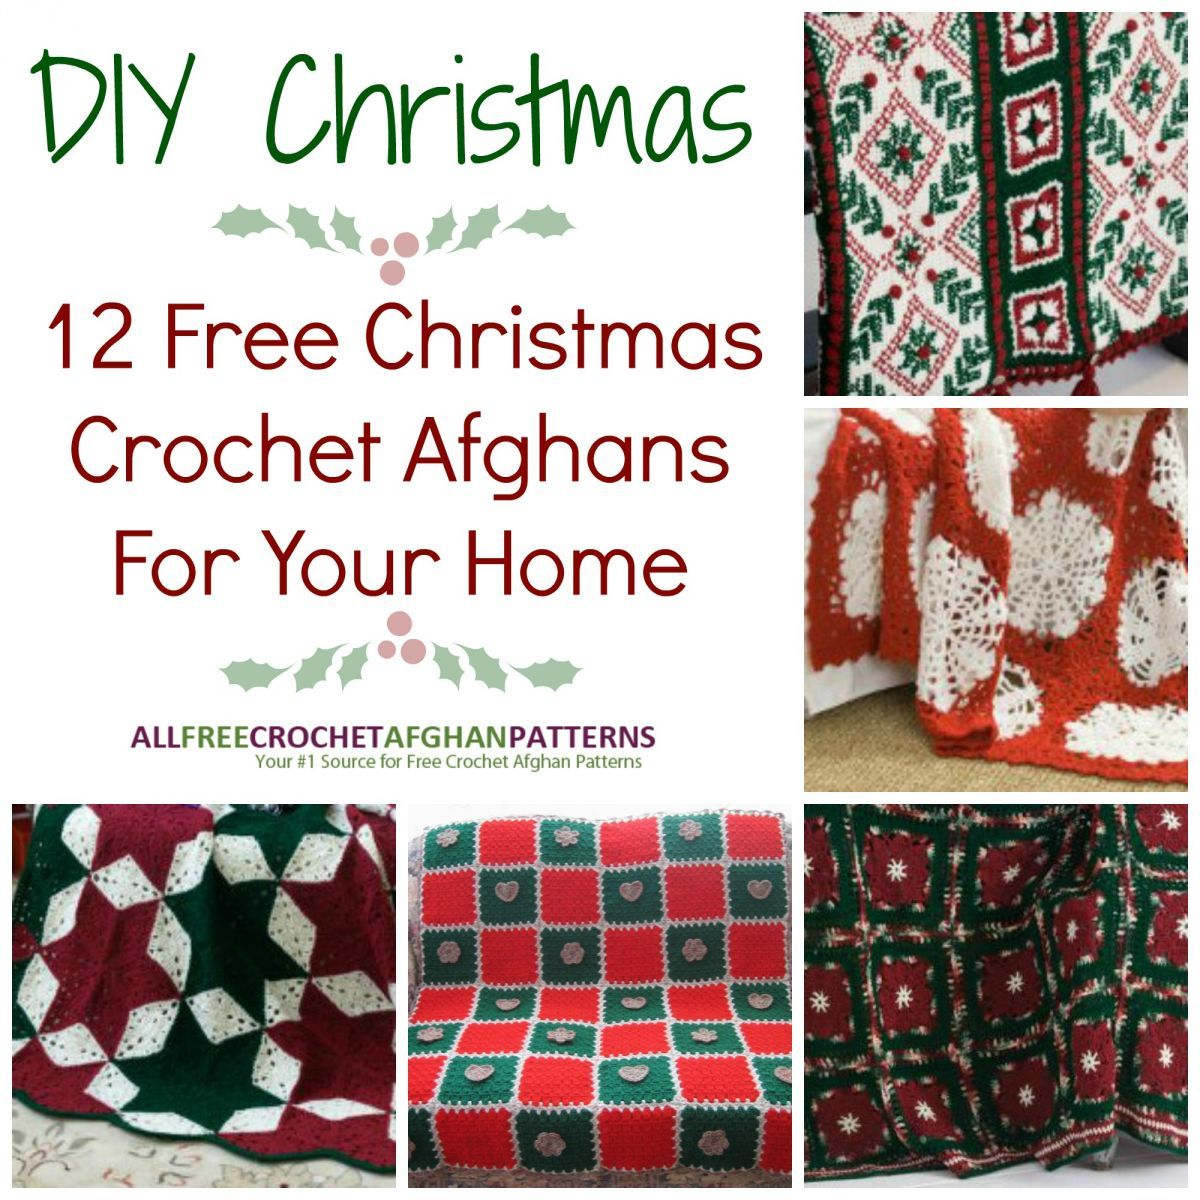 DIY Christmas: 21 Free Christmas Crochet Afghan Patterns For Your ...